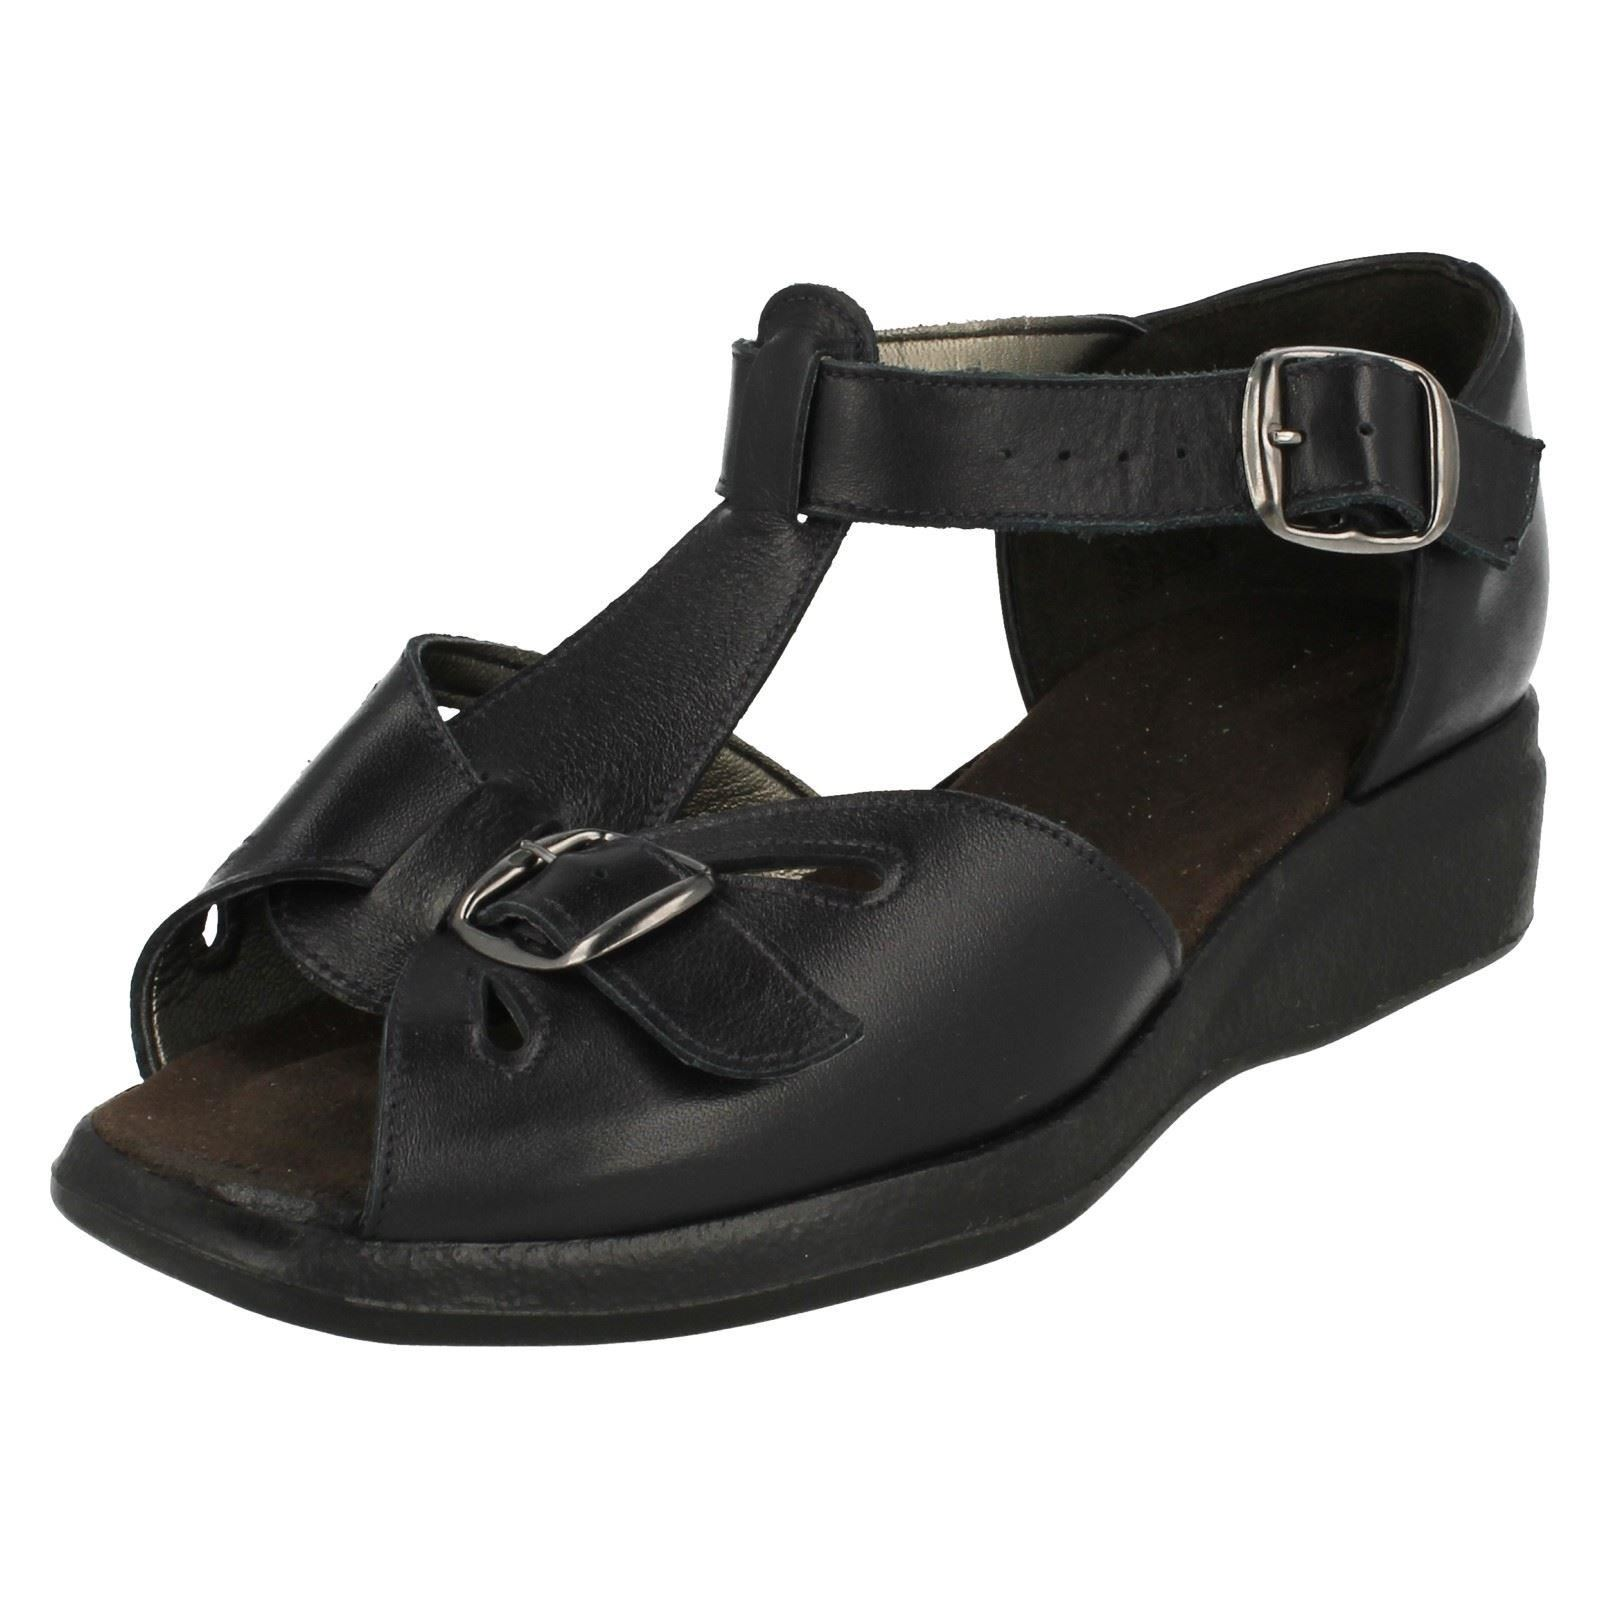 Equity sandals shoes